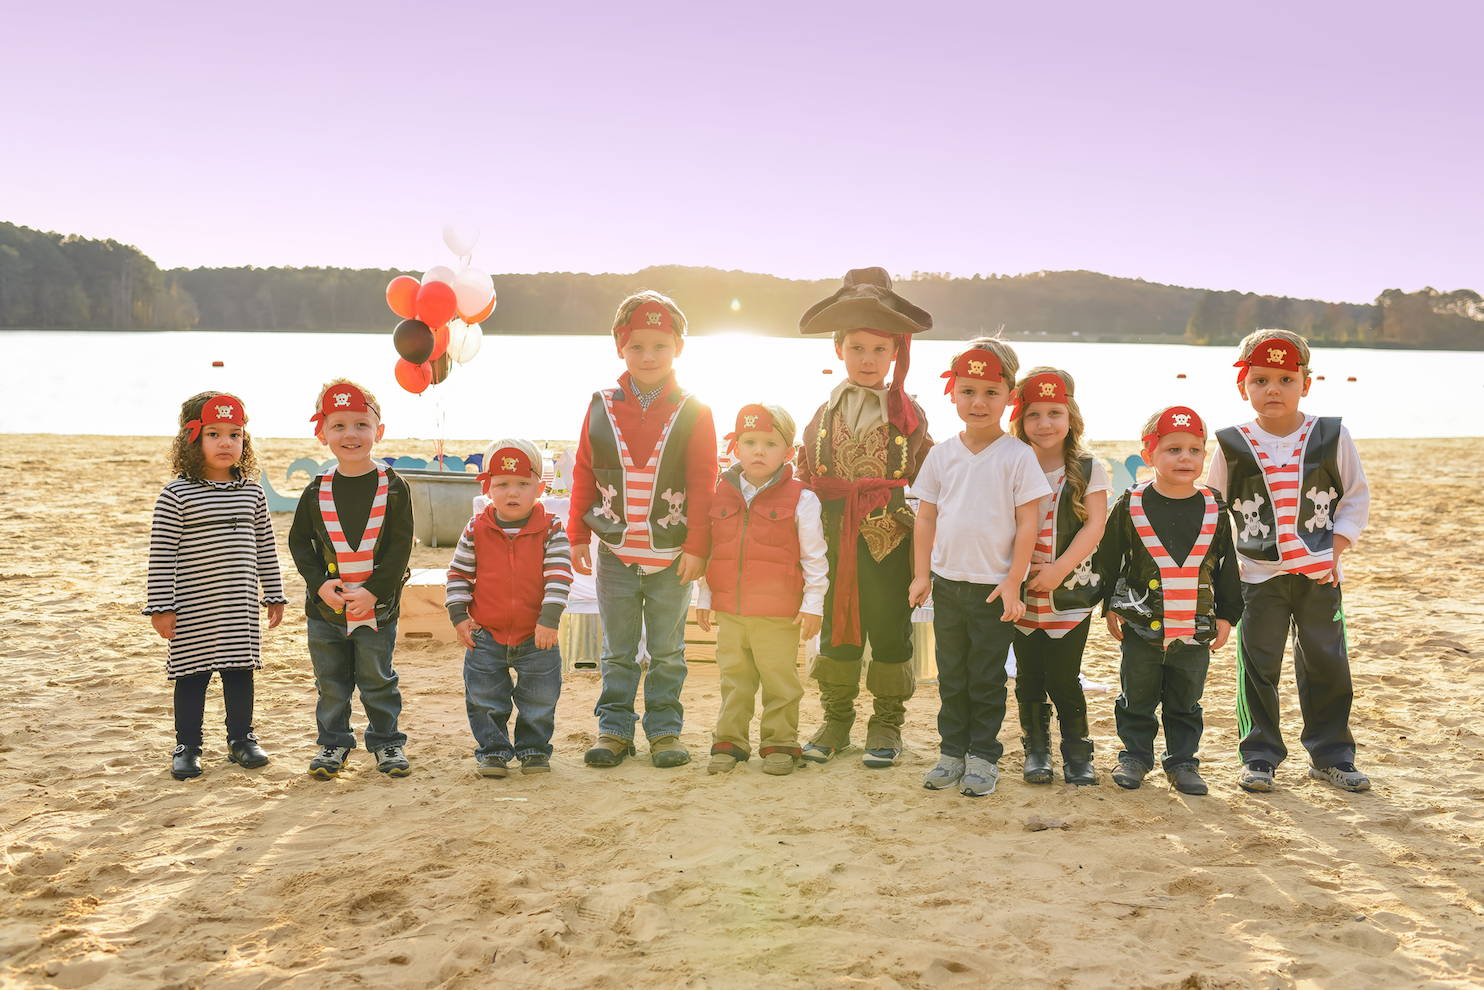 Pirate Party Ideas, Pirate Birthday Theme